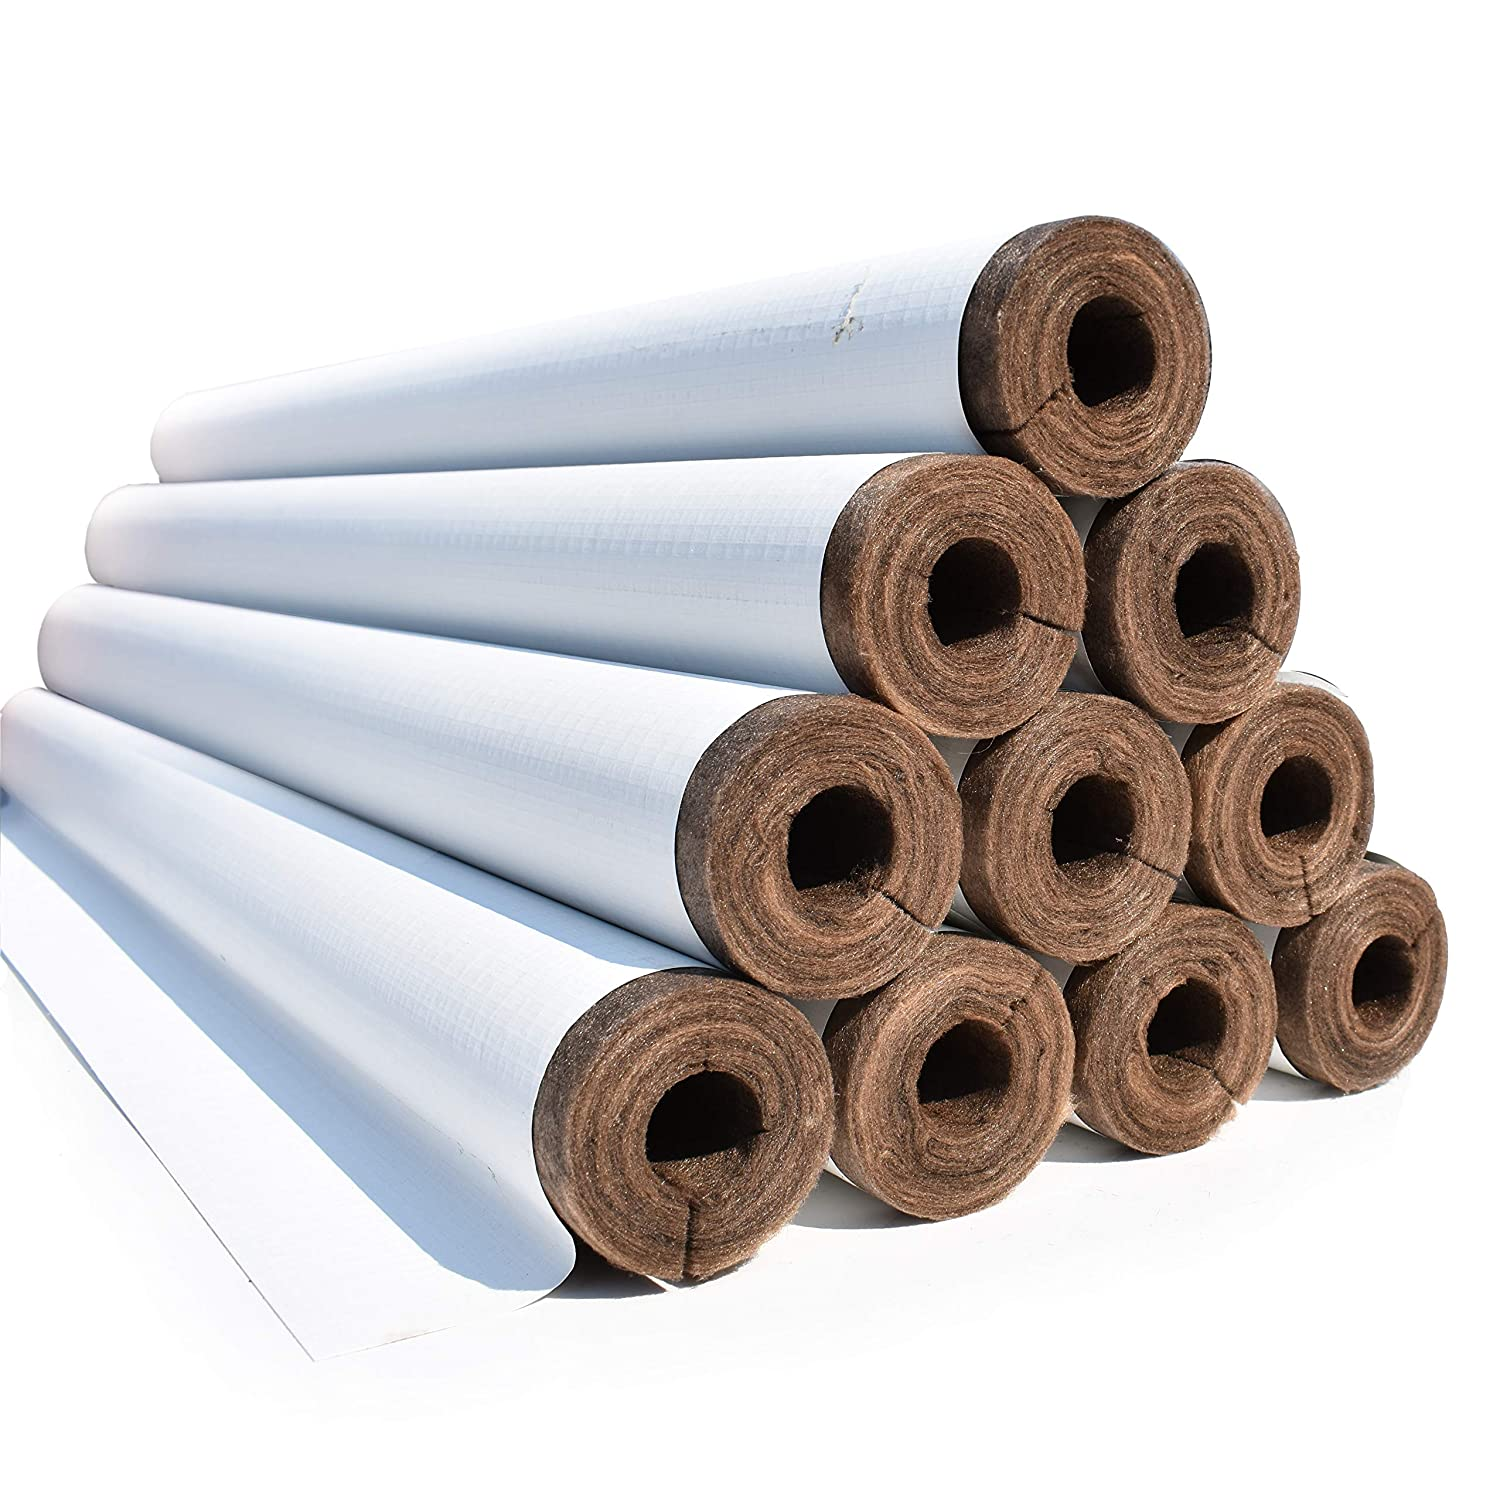 Fiberglass Pipe Insulation /(3 x 1 1//2/) with ECOSE